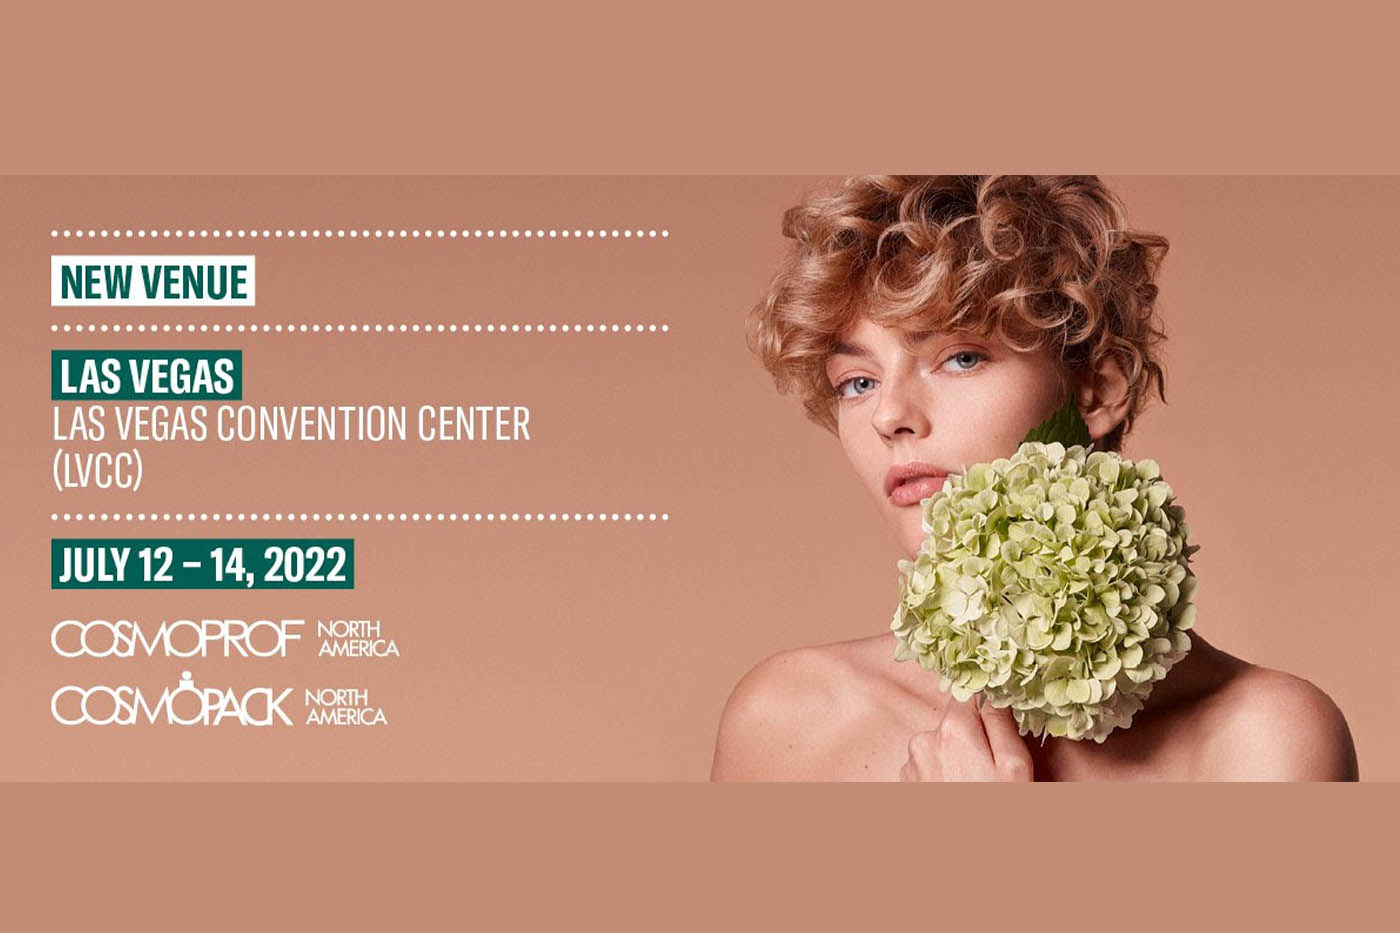 Cosmoprof North America to host 19th edition in July 2022 in Las Vegas